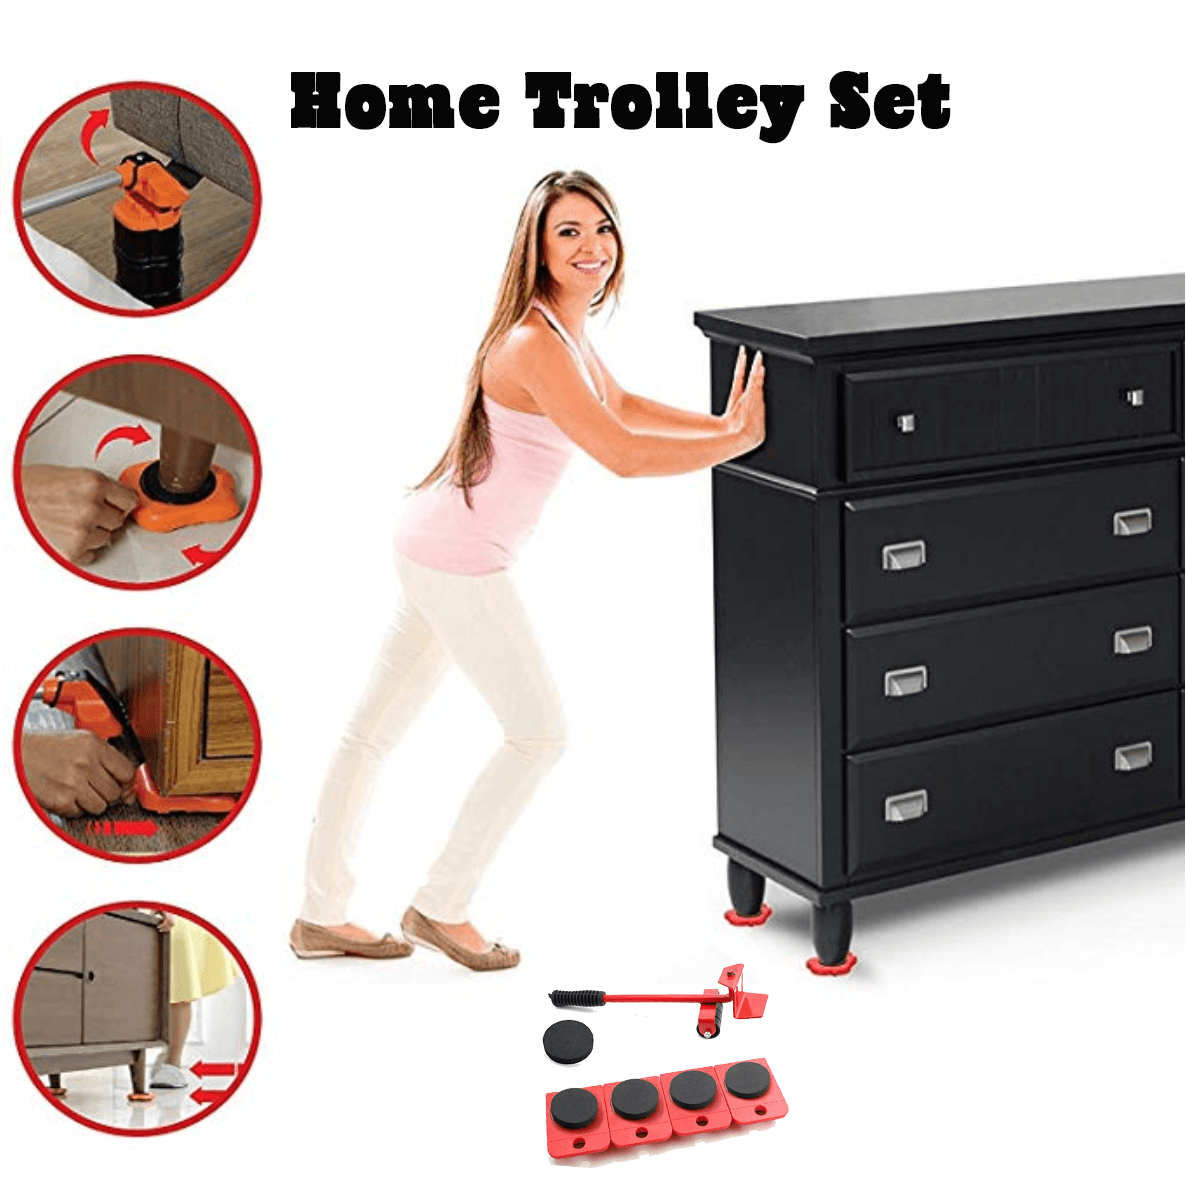 Home Trolley Set (4 pcs)